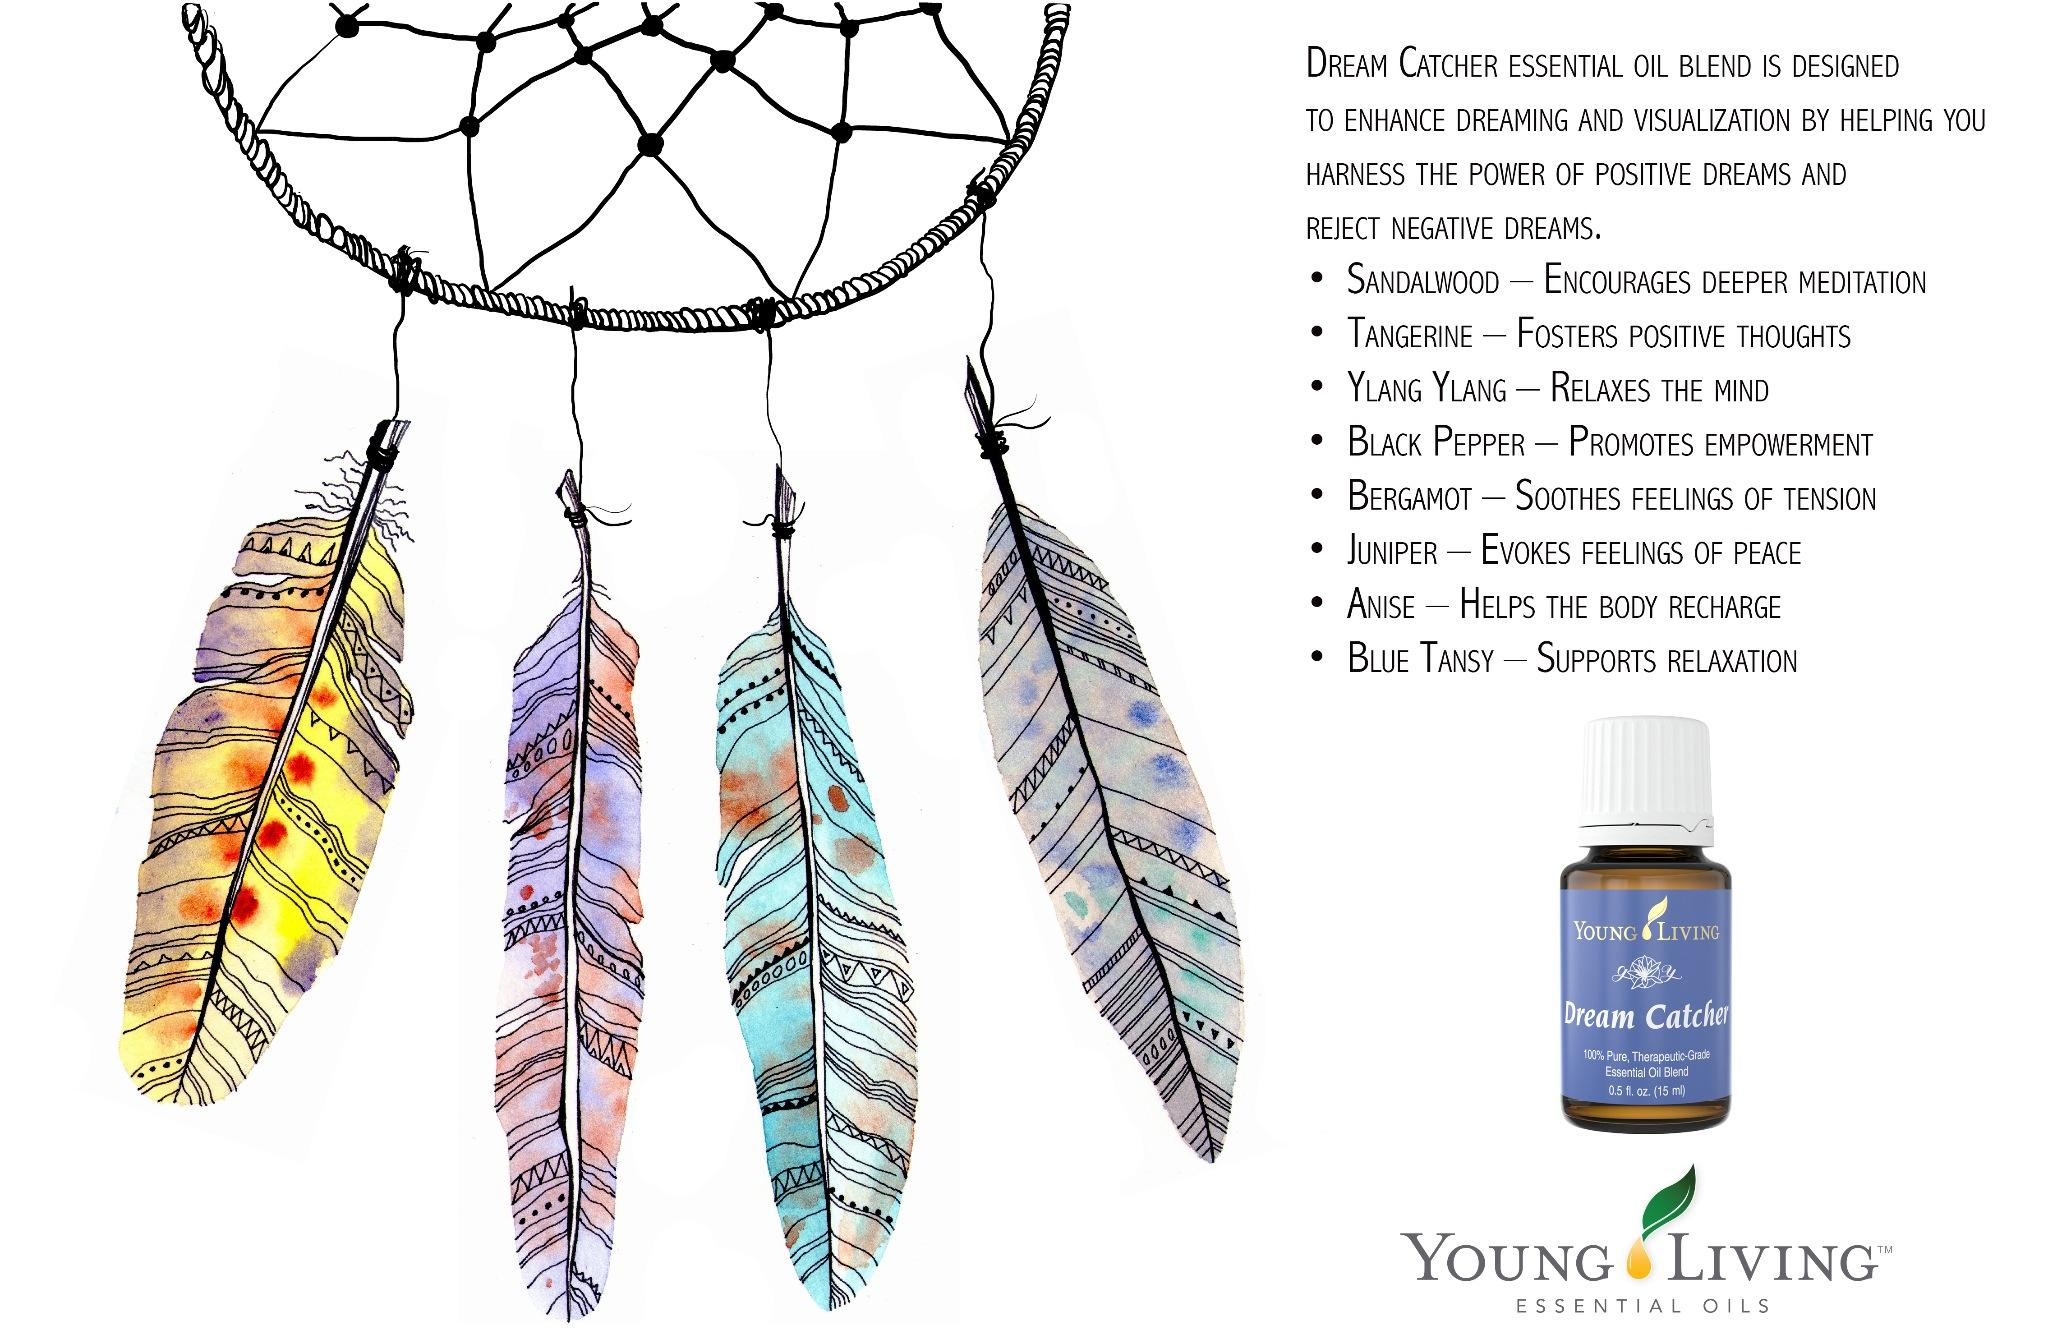 Sweet dreams! Dream Catcher essential oil blend is designed to enhance dreaming and visualization. #YLtips http://t.co/KqYC3q7sJI